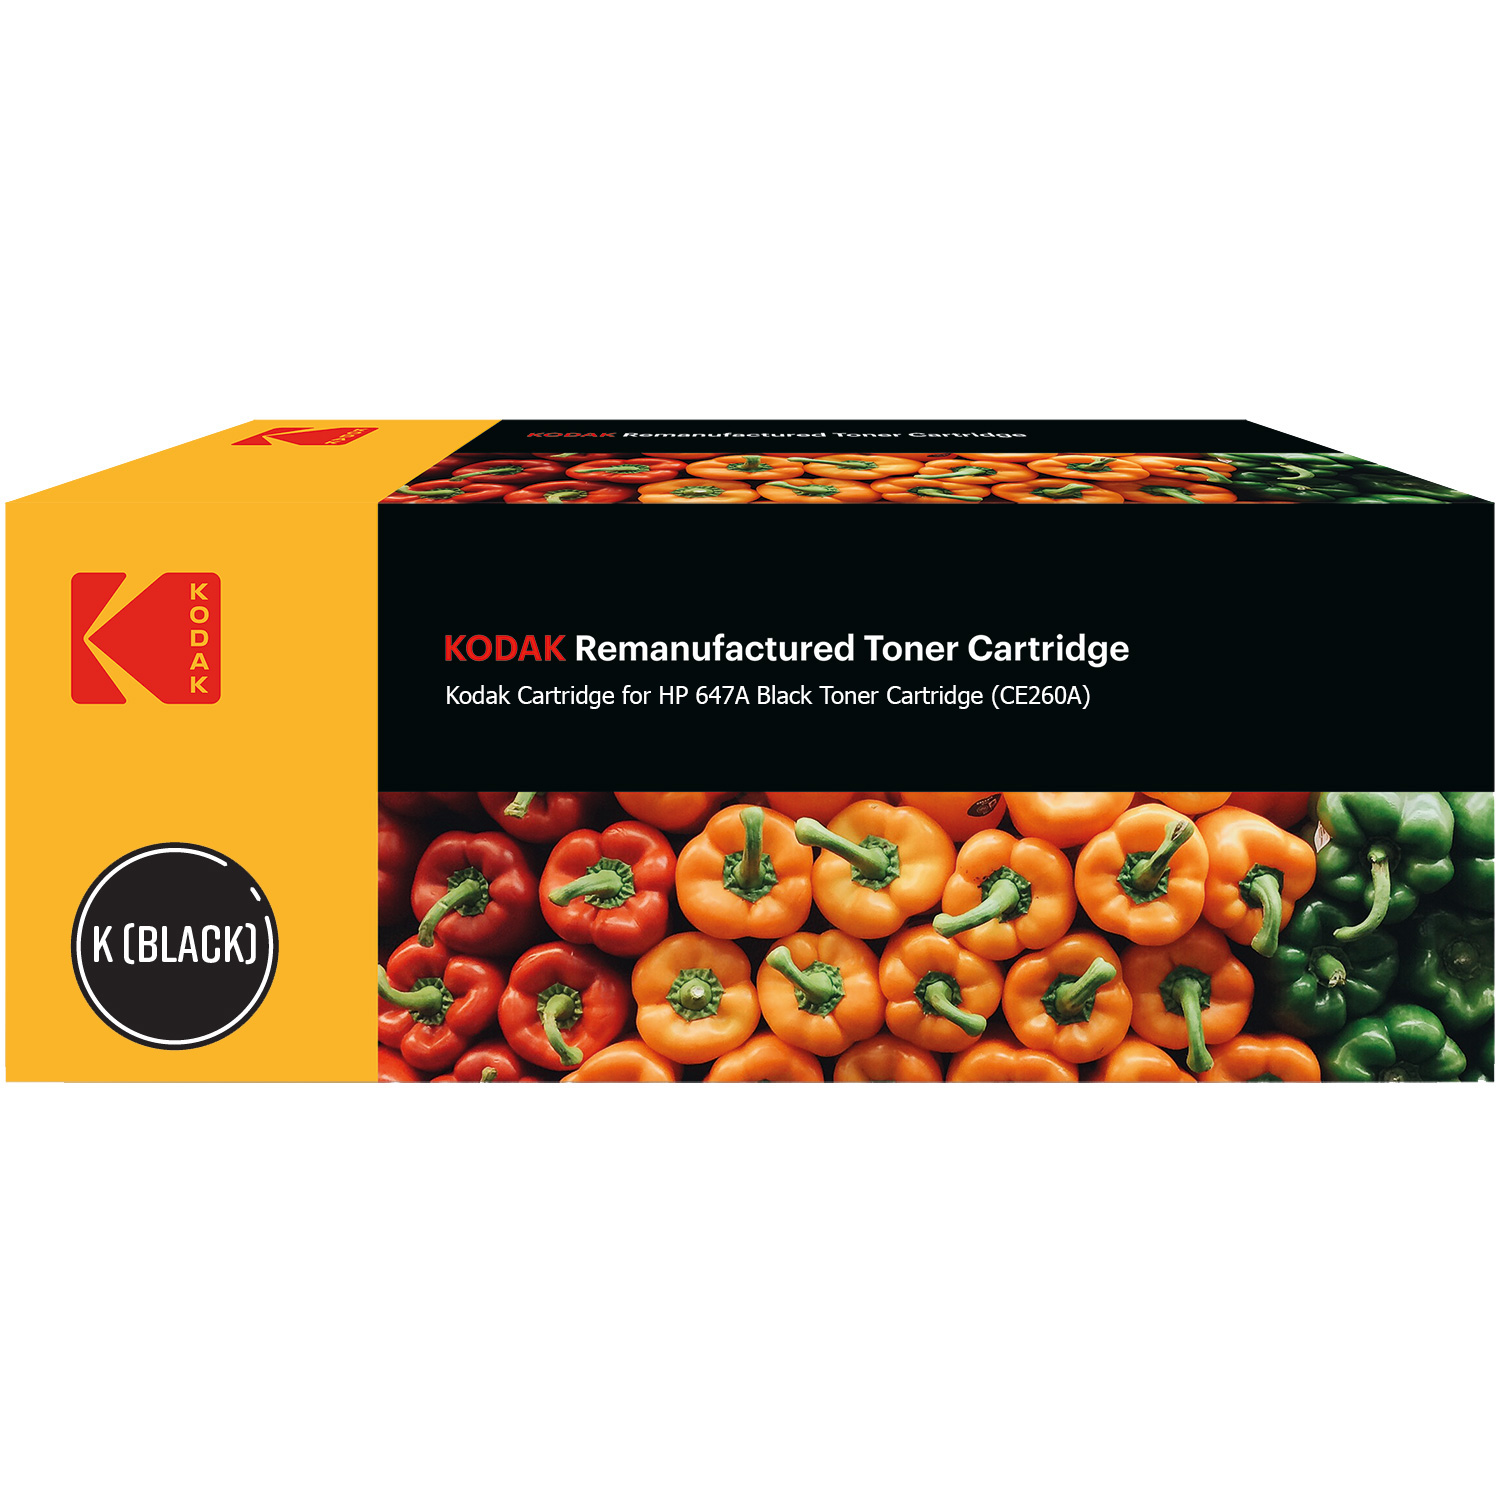 Ultimate HP 647A Black Toner Cartridge (CE260A) (Kodak KODCE260A)